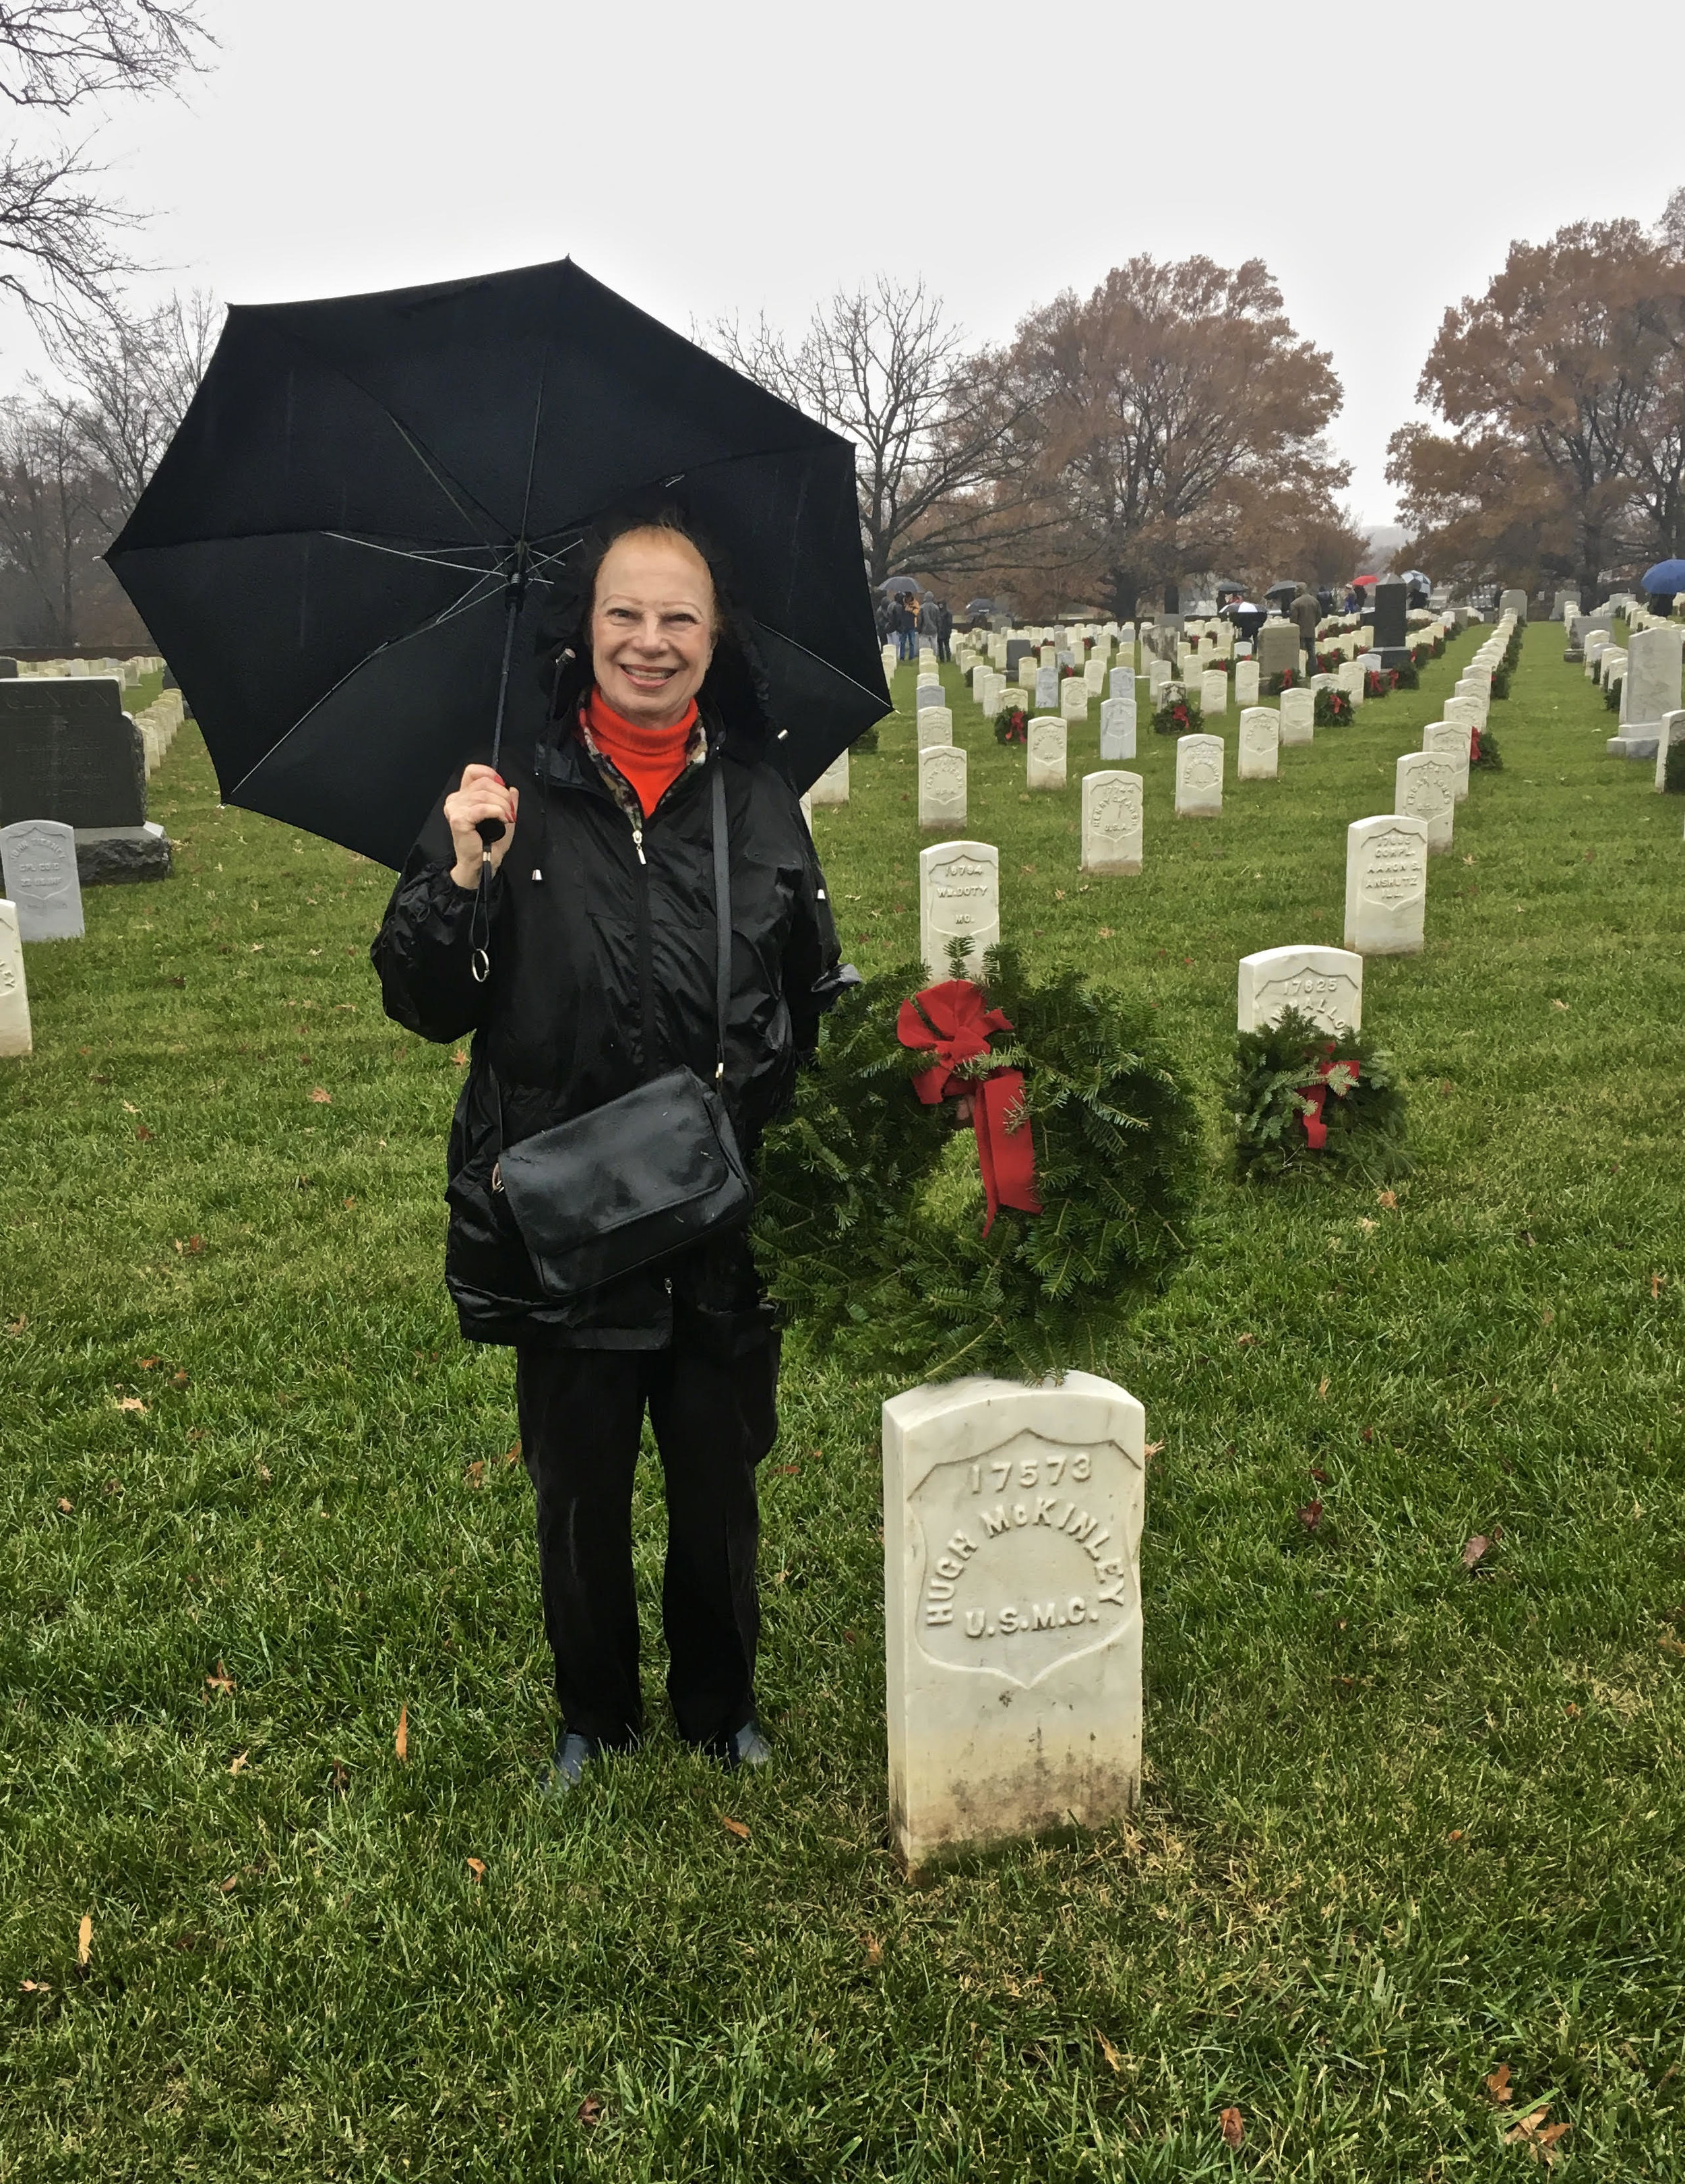 Wreaths Across America, Arlington National Cemetery